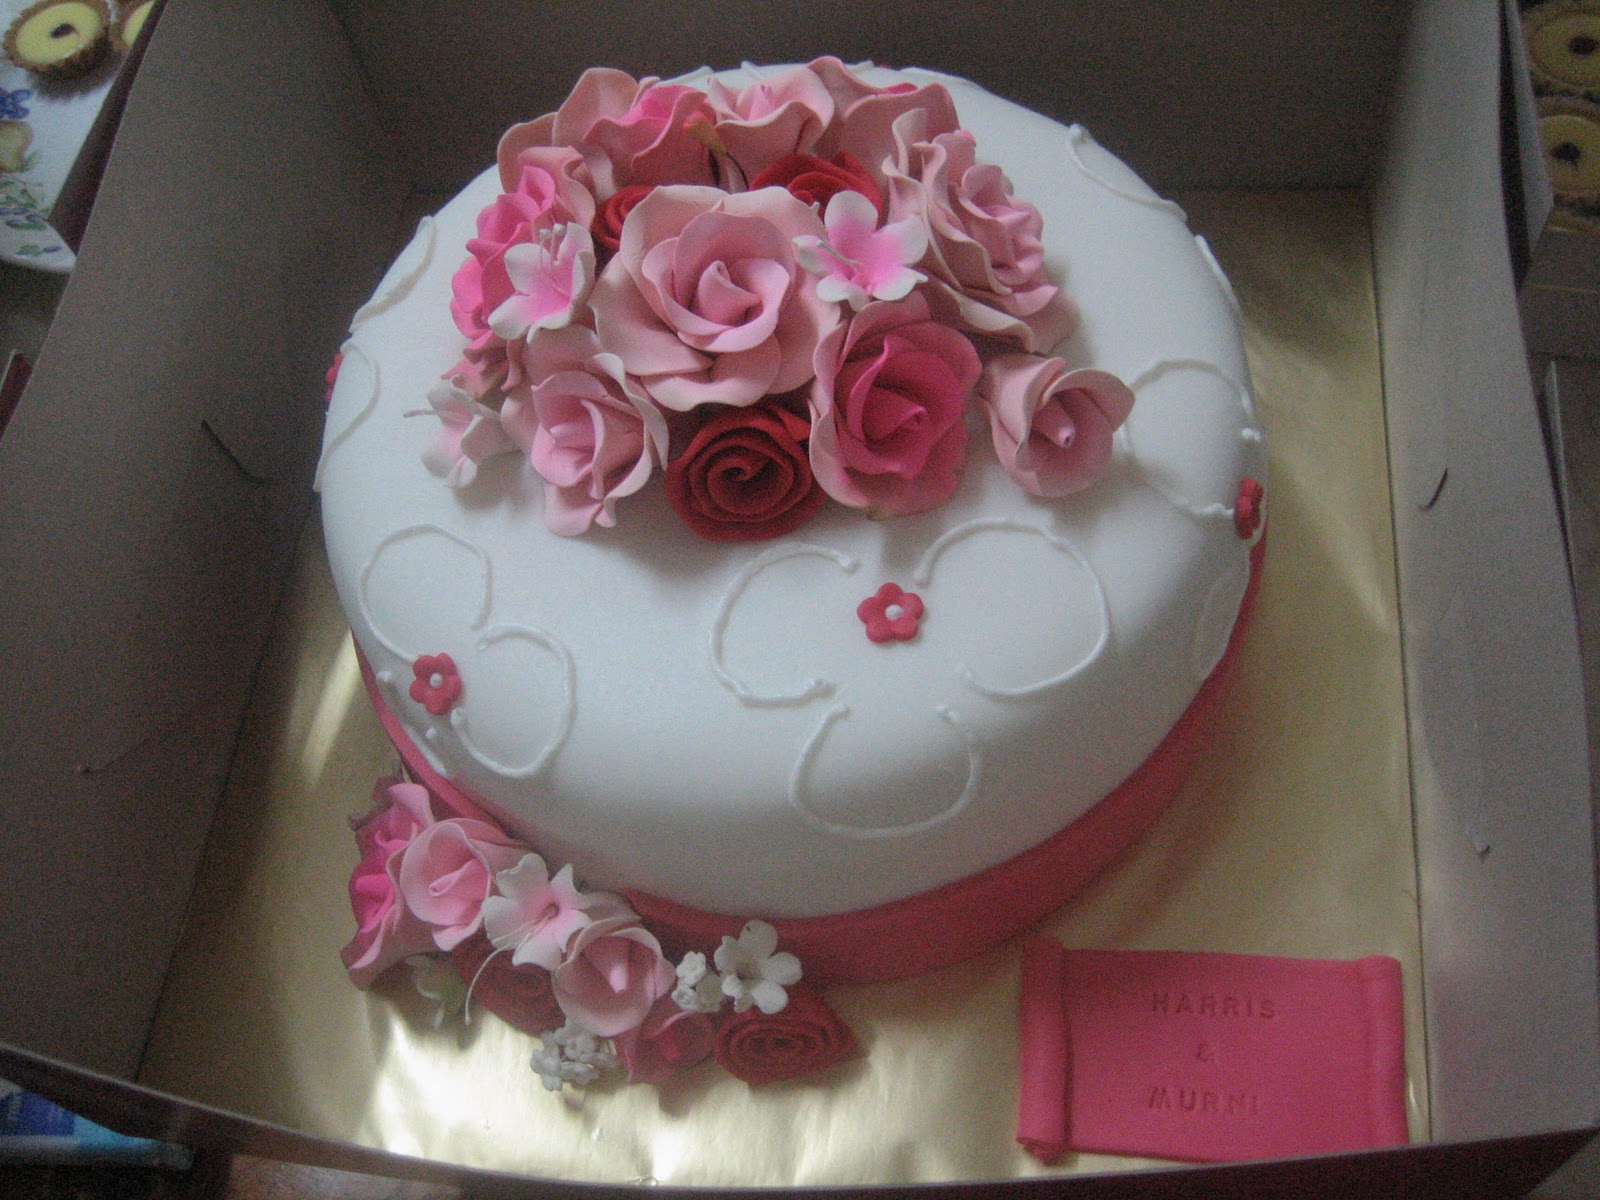 Simple Cake Designs With Fondant : Homemade sweet treats....: A simple hantaran fondant cake ...